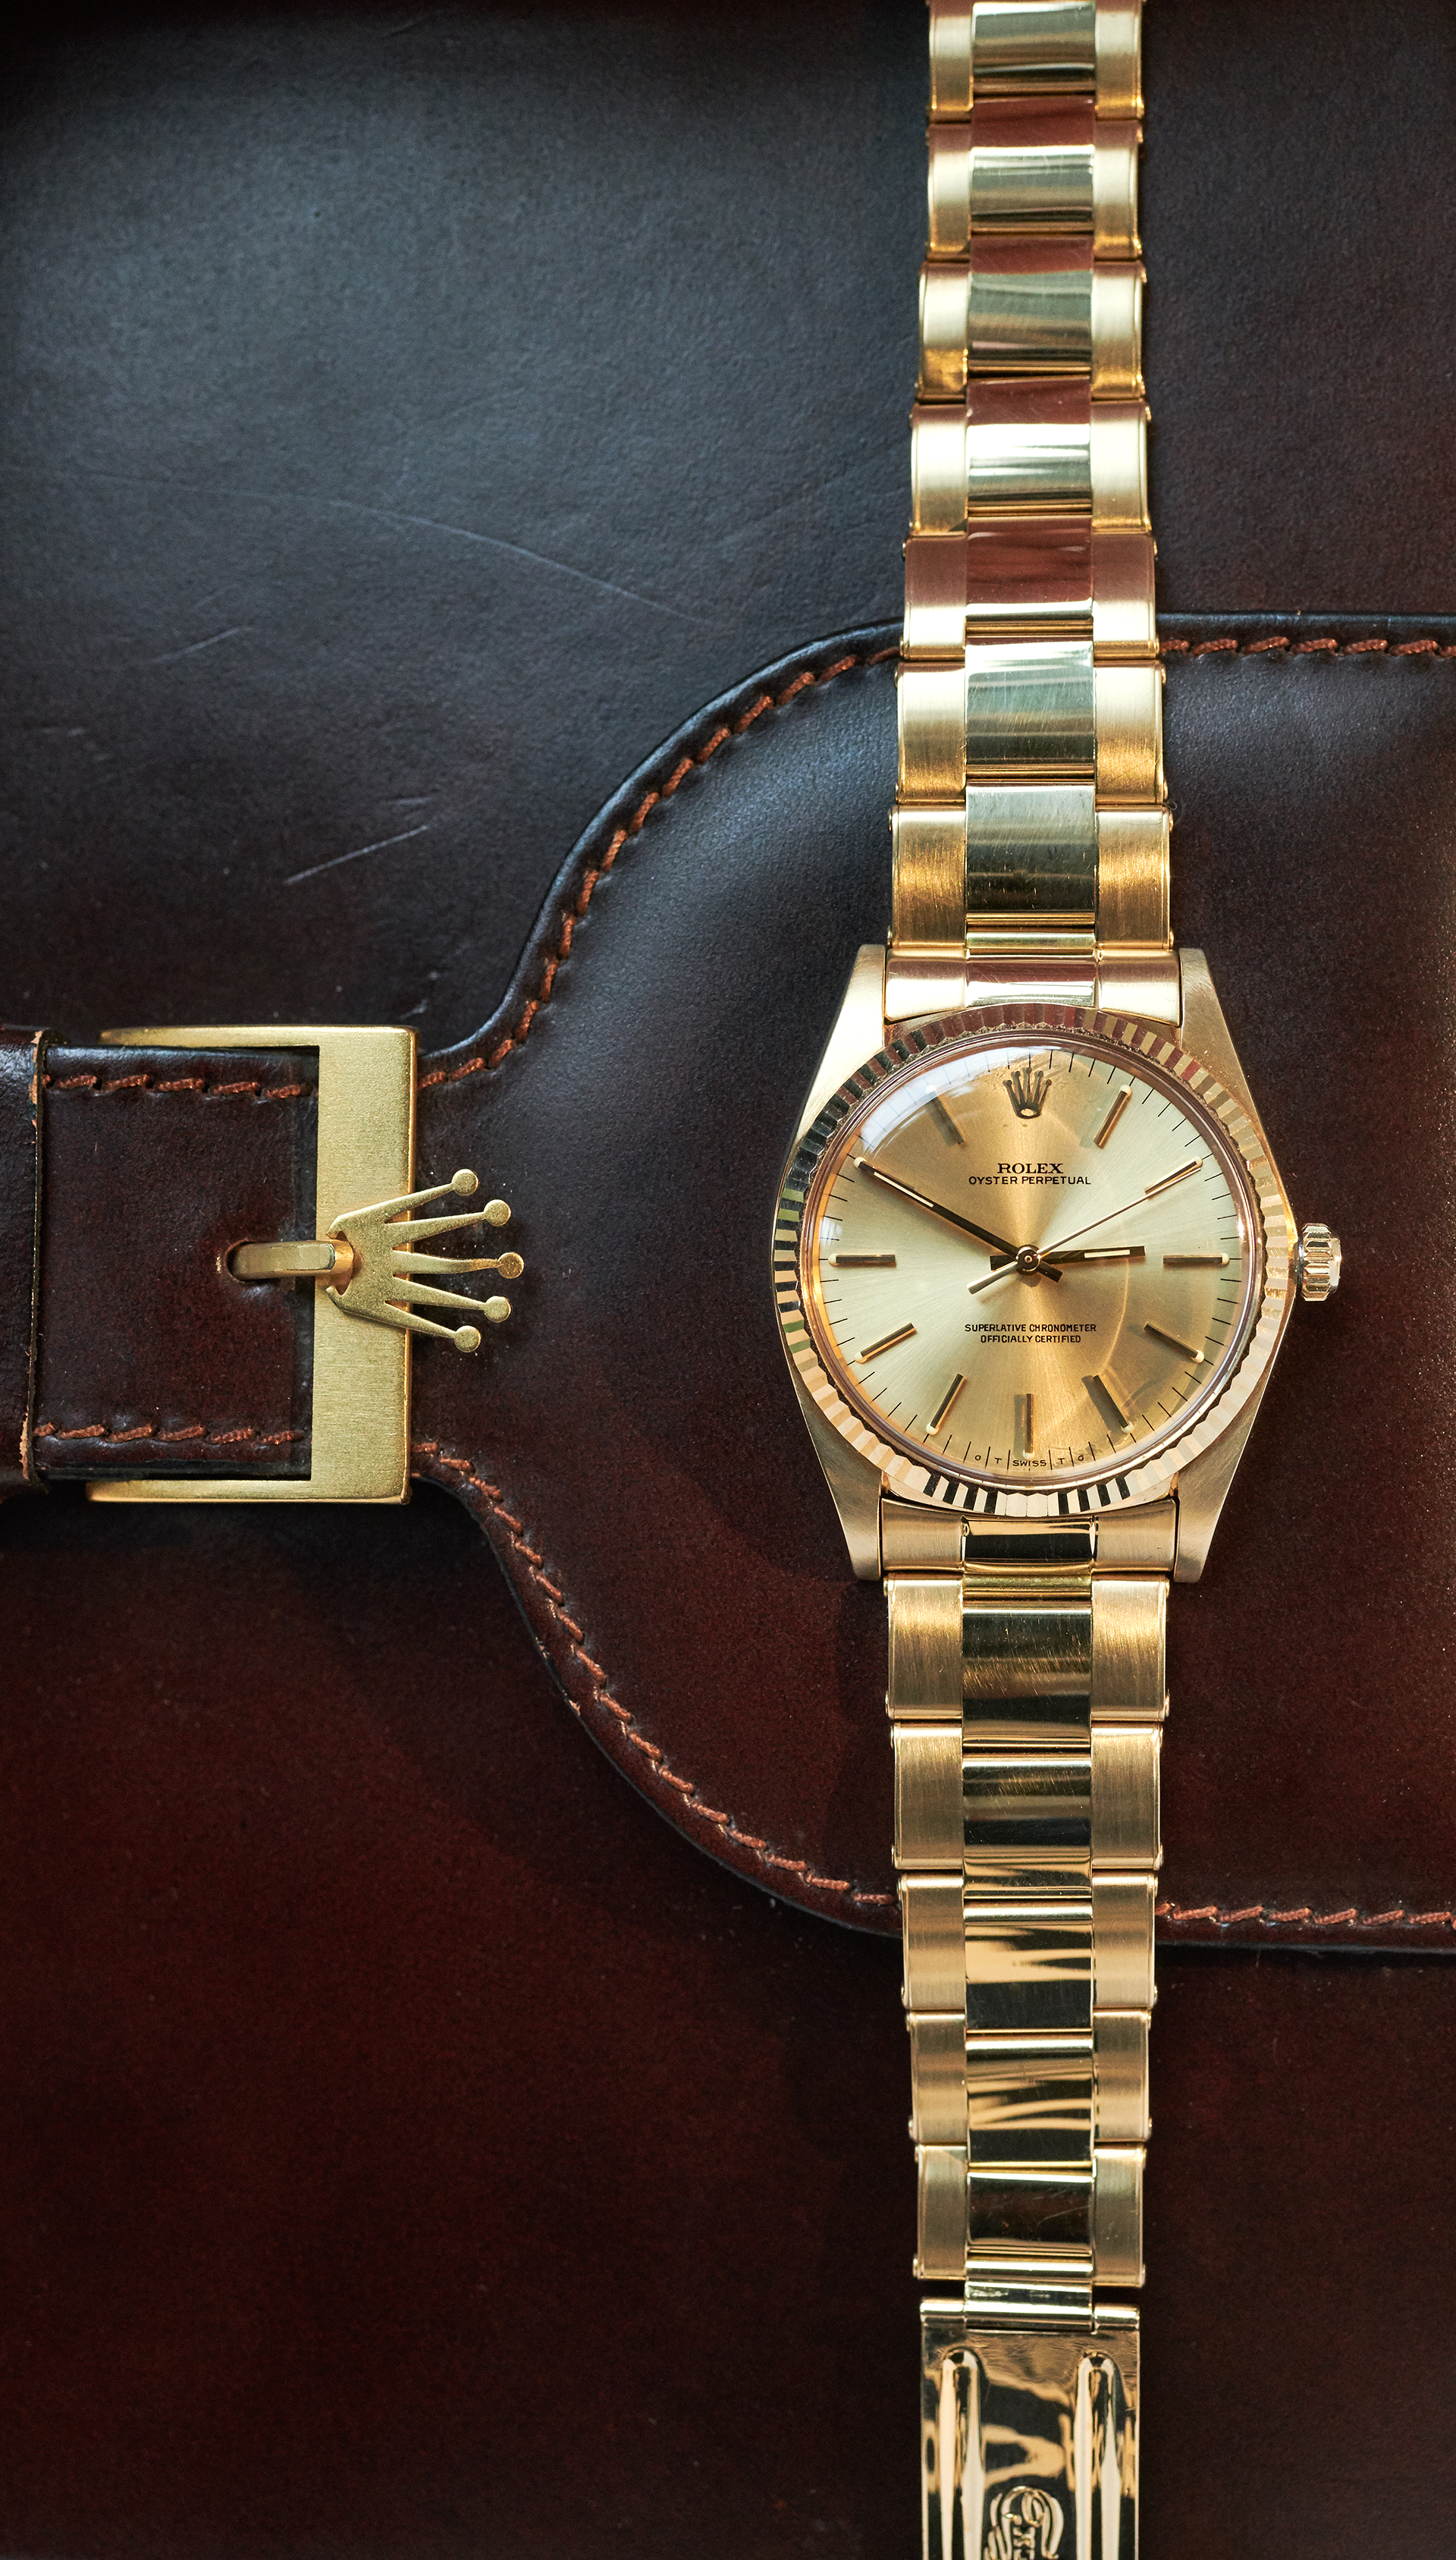 Rolex 1013 Sigma Dial / 18k Yellowgold